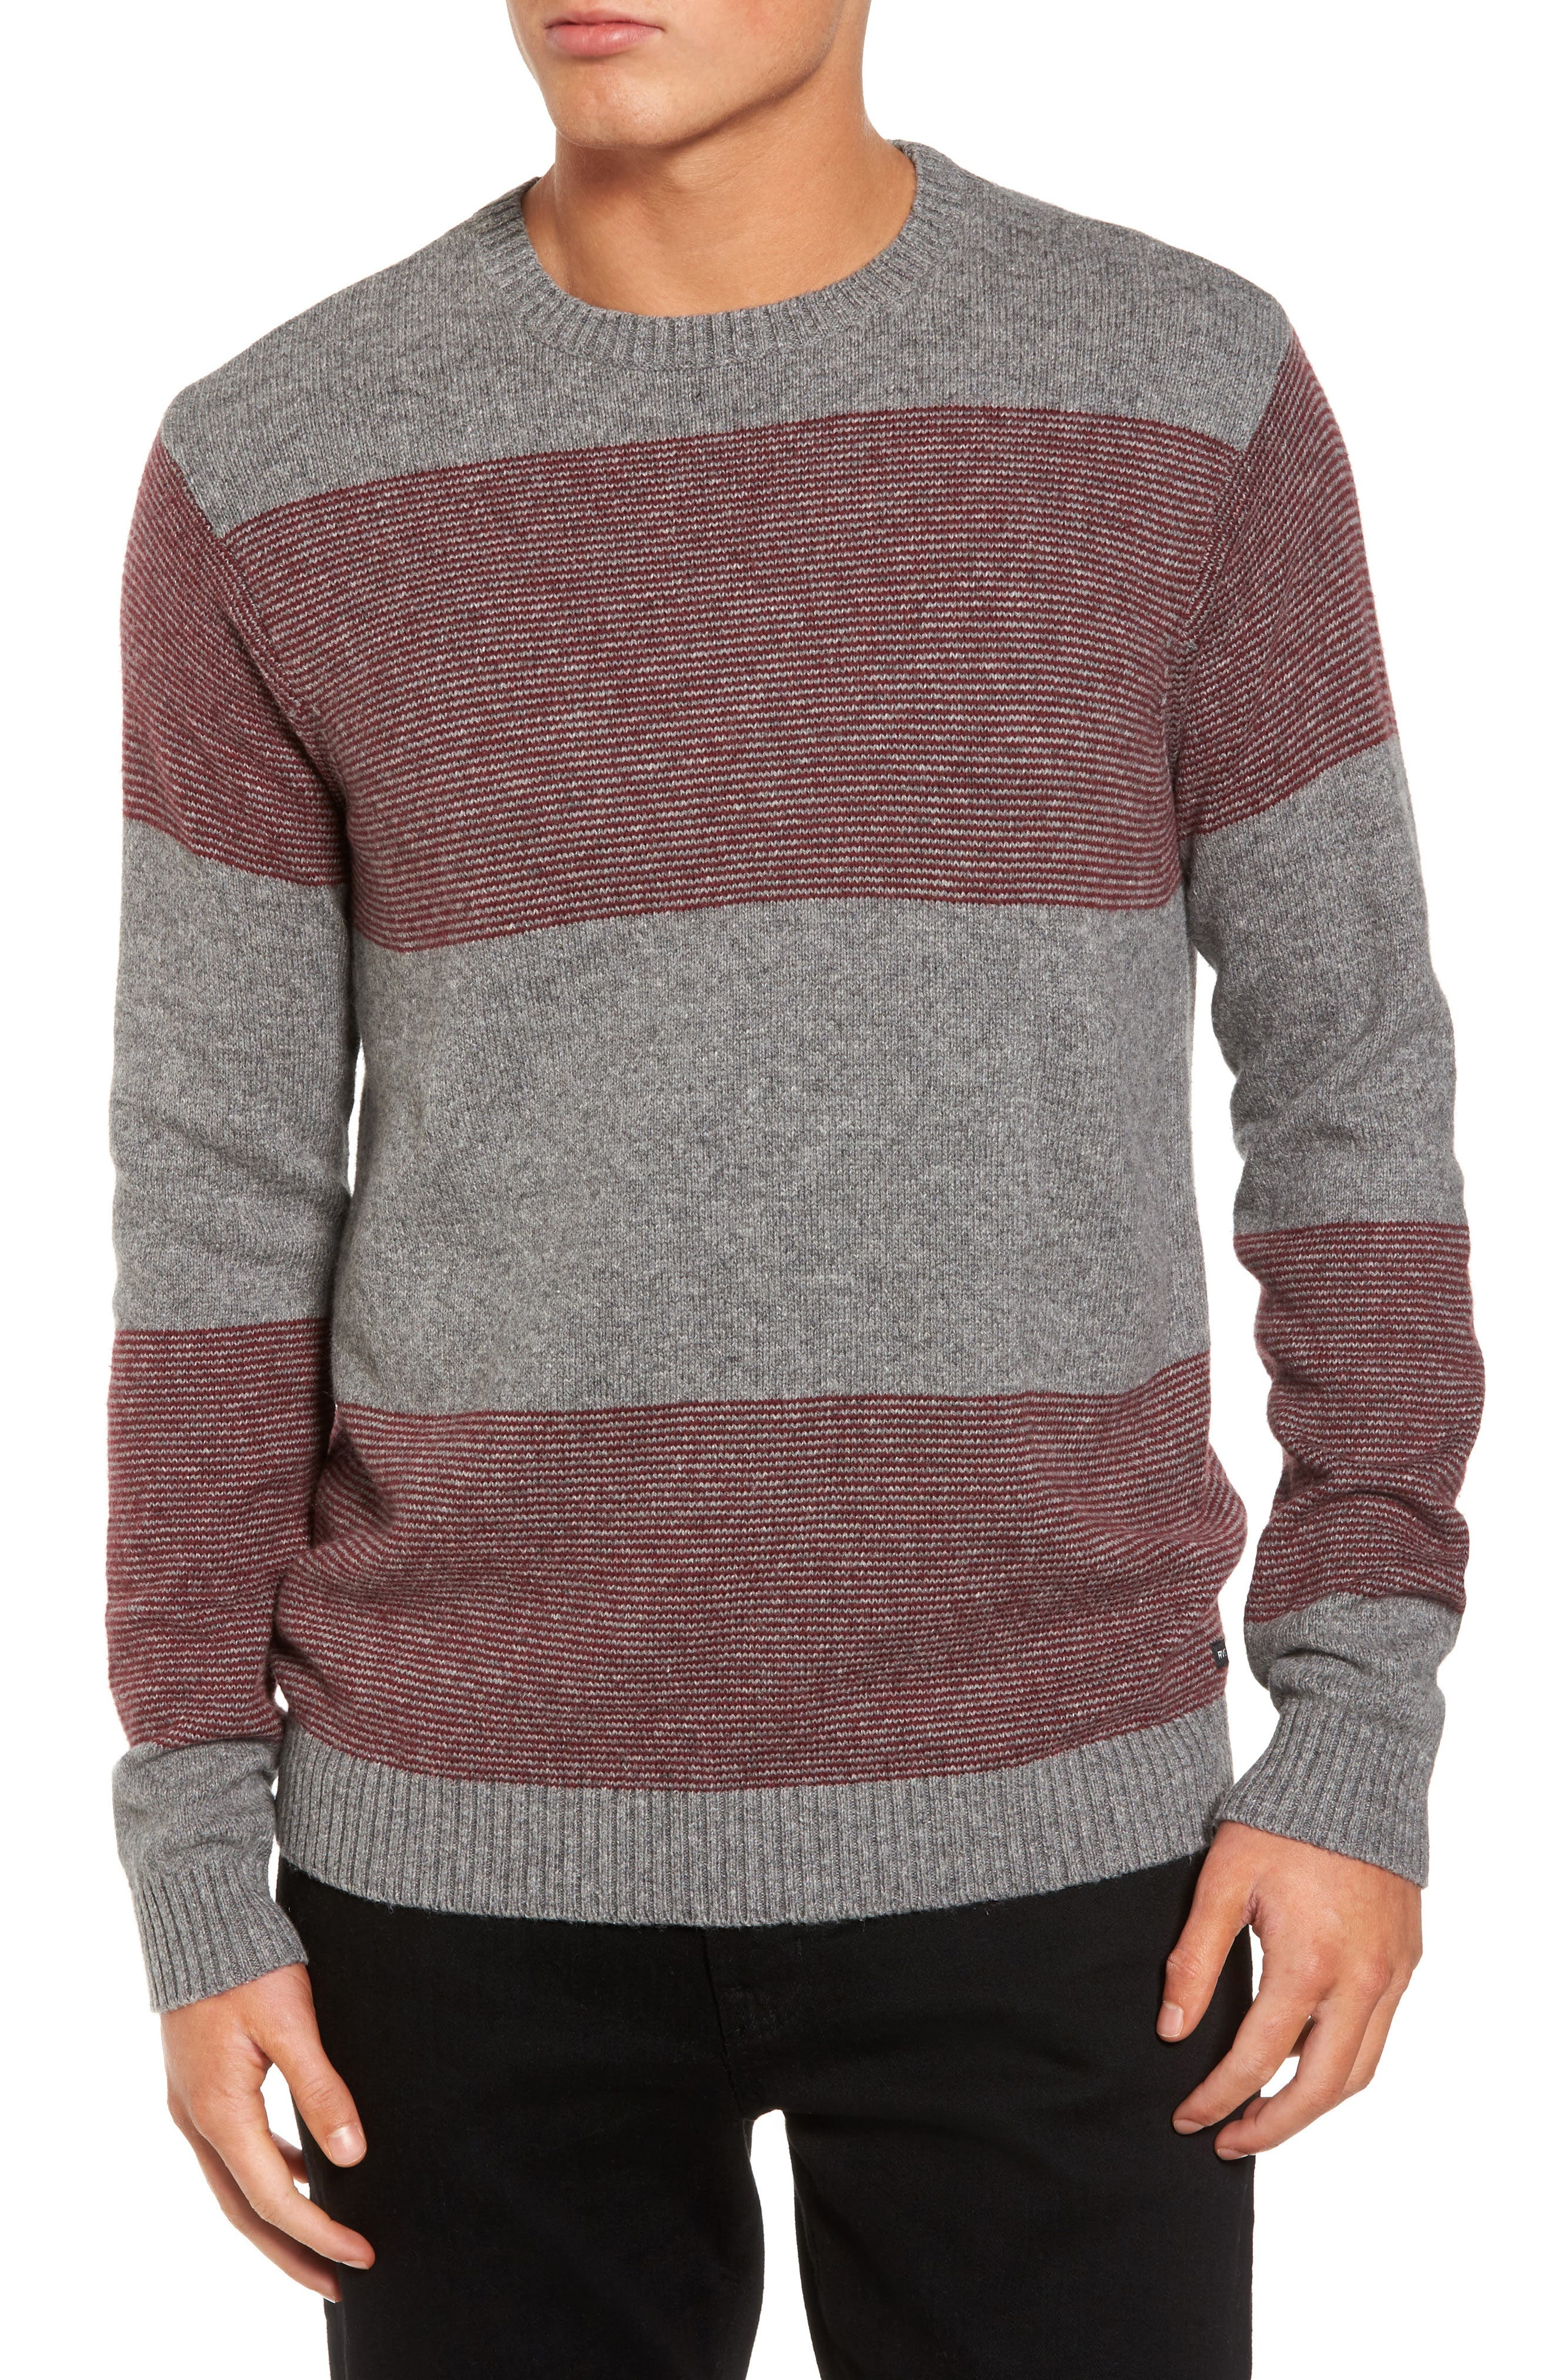 Alternate Image 1 Selected - RVCA Channels Crewneck Sweater